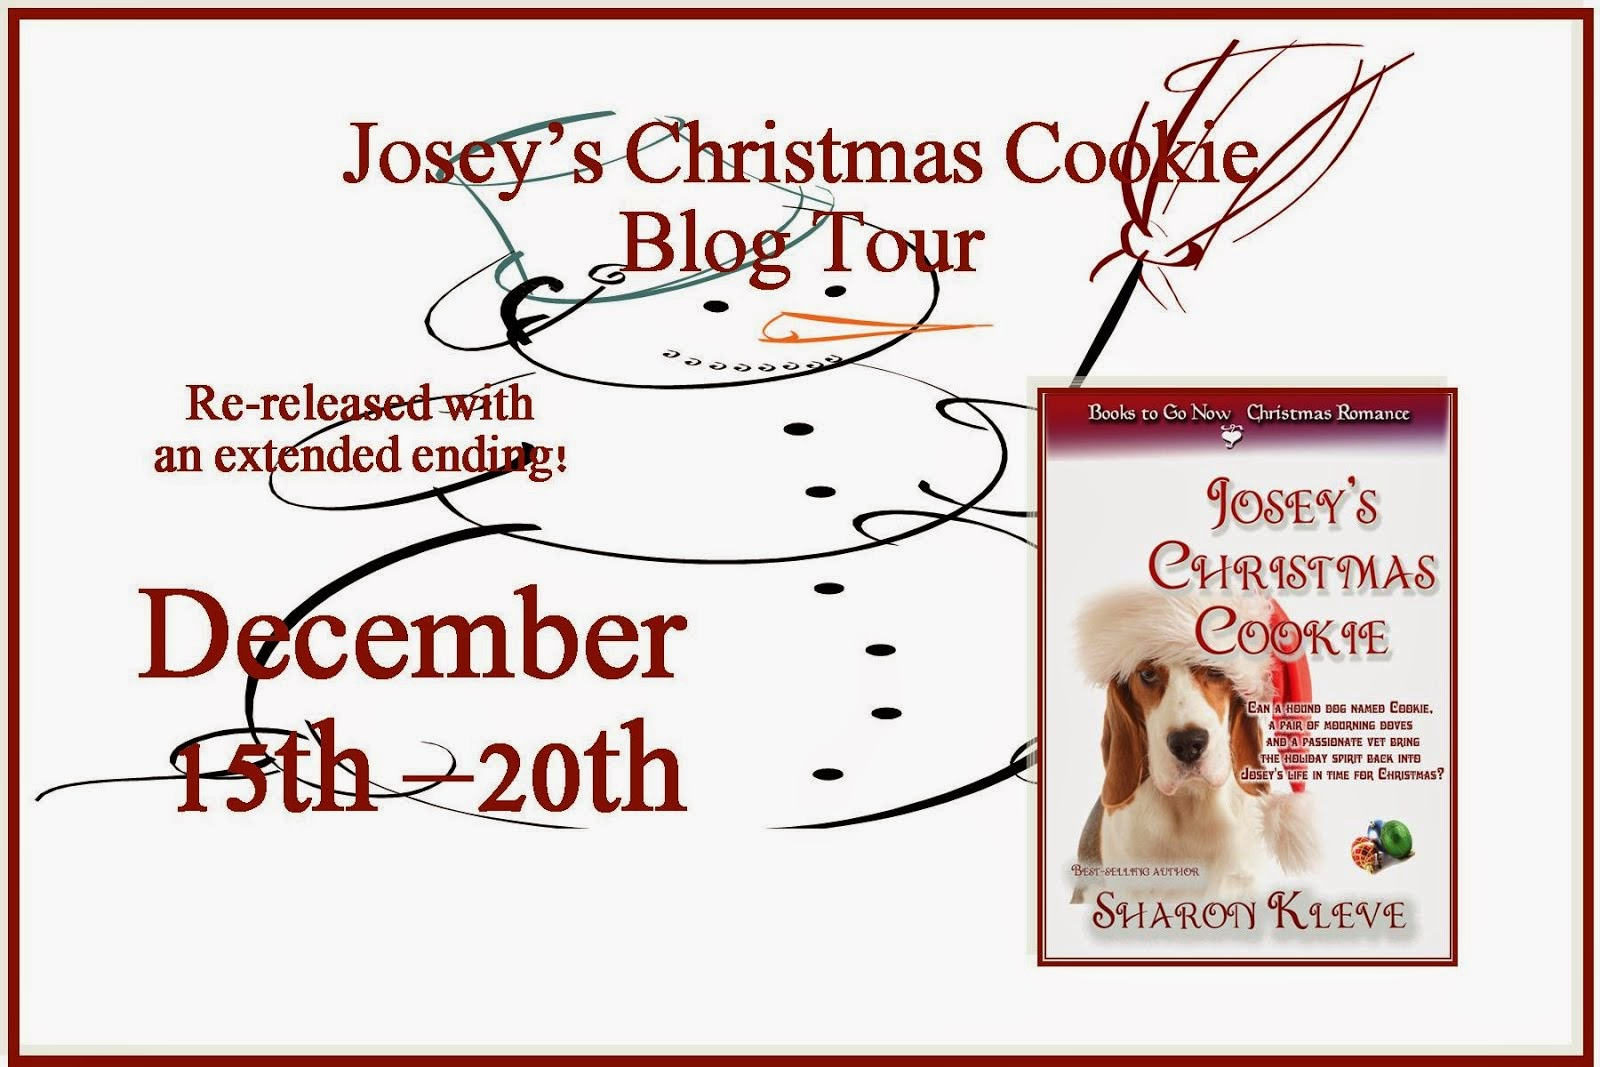 Josey's Christmas Cookie Blog Tour